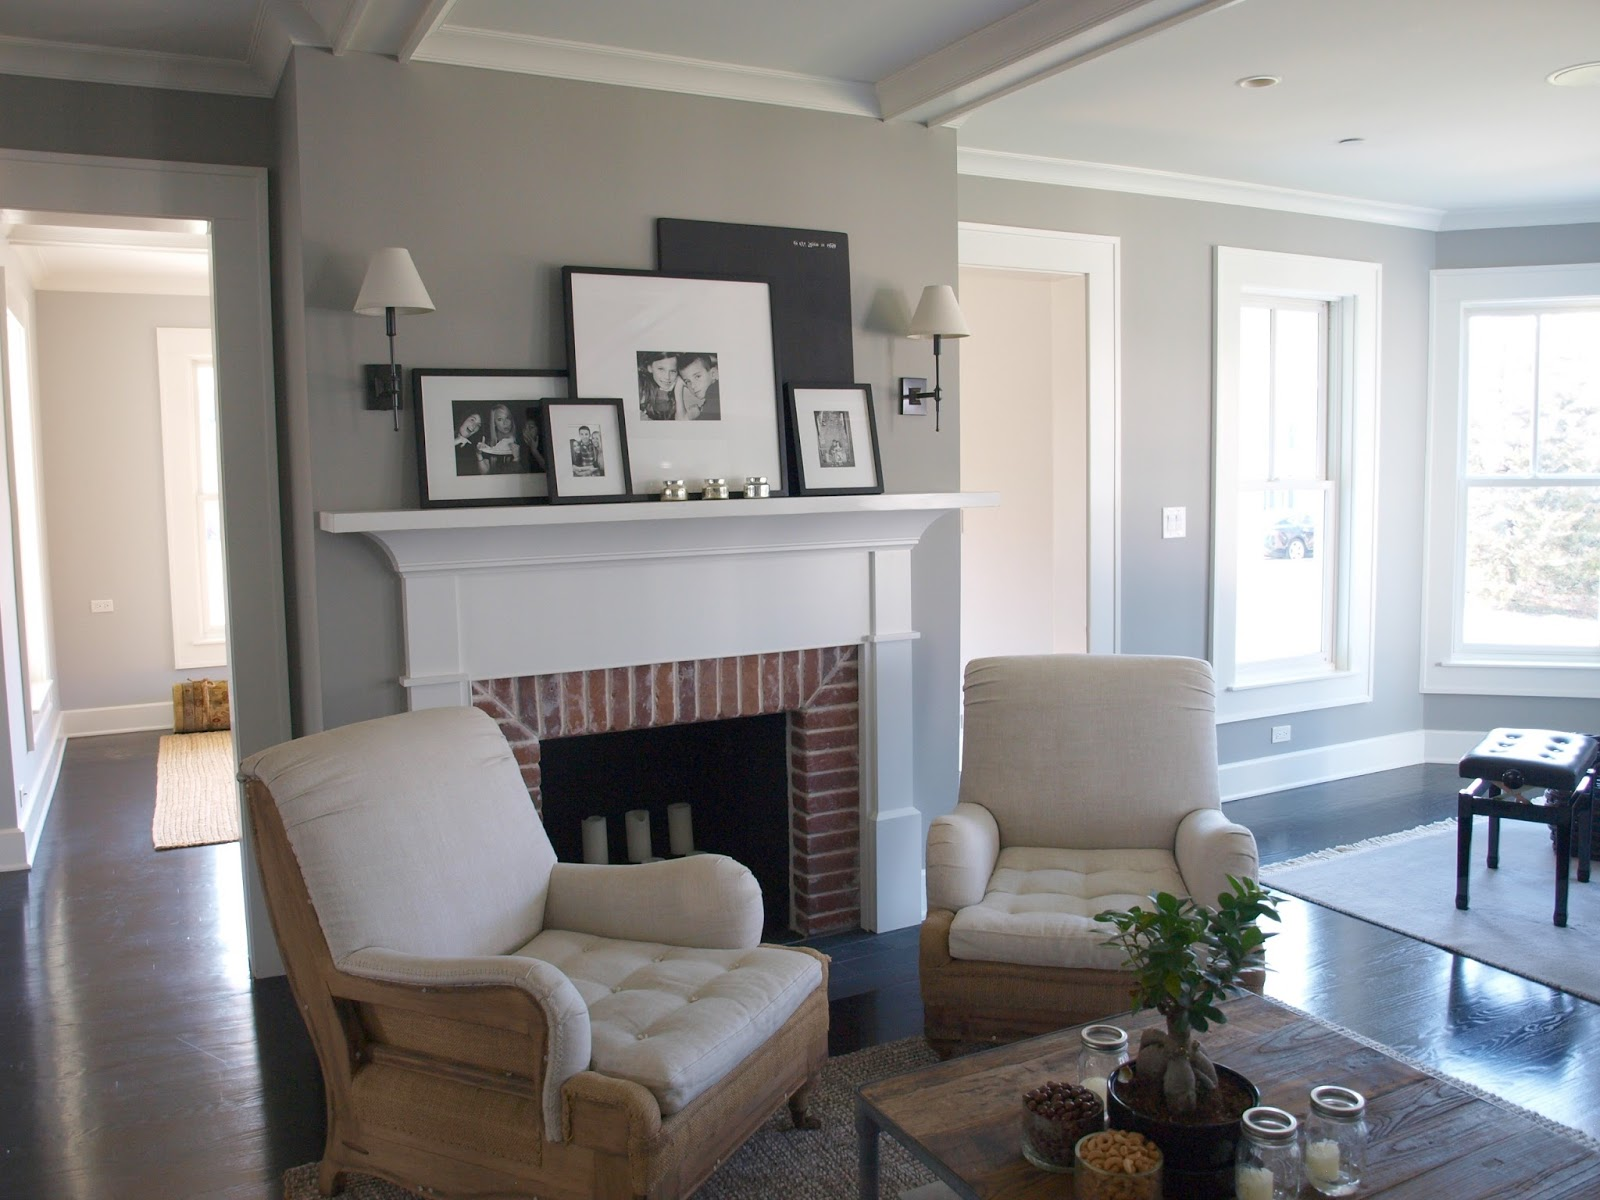 Modern farmhouse living room with grey walls and red brick fireplace - Hello Lovely Studio